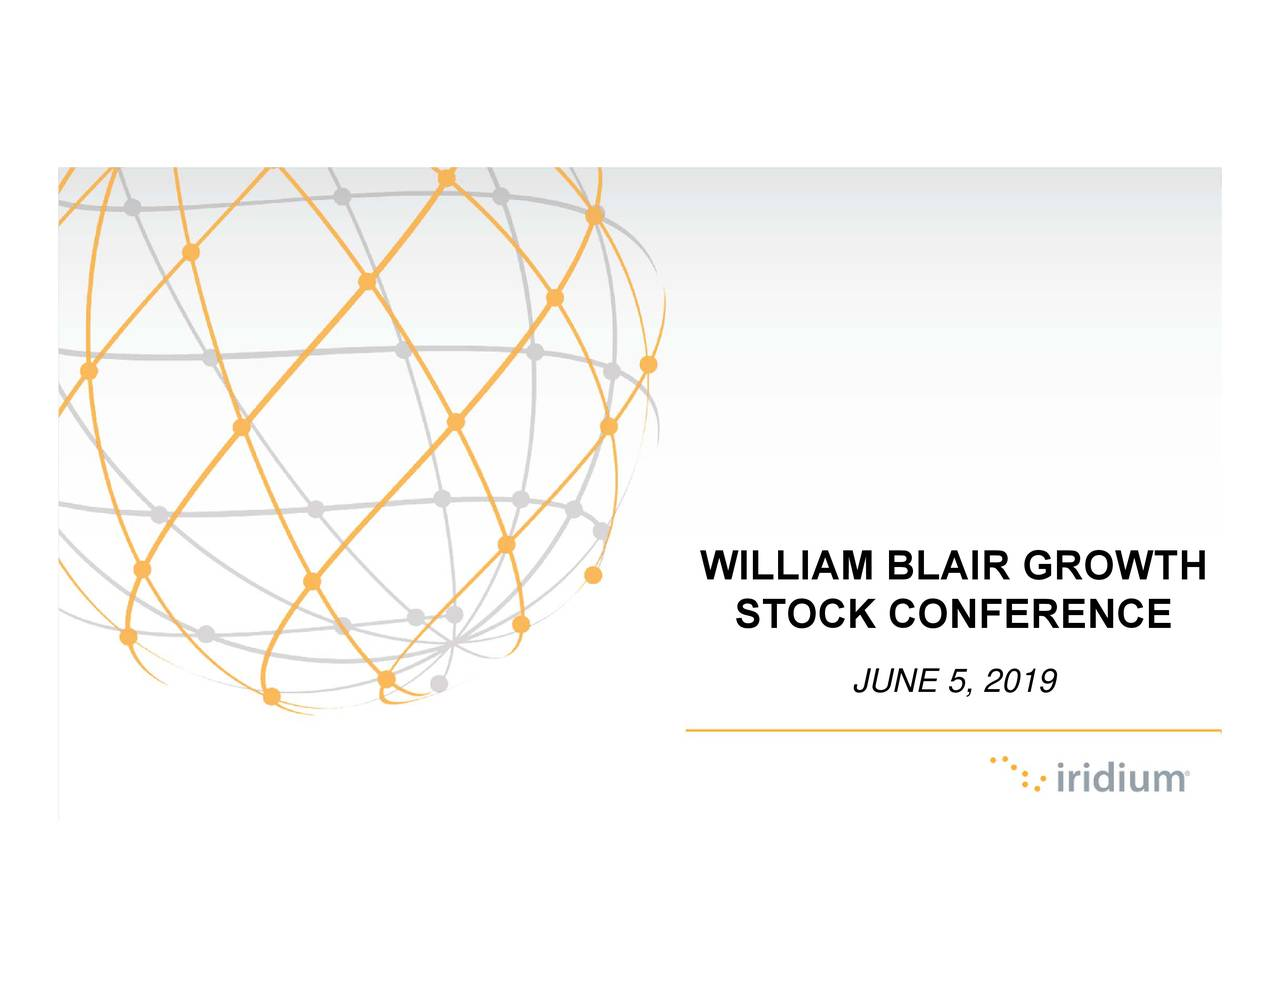 STOCK CONFERENCE WILLIAM BLAIR GROWTH